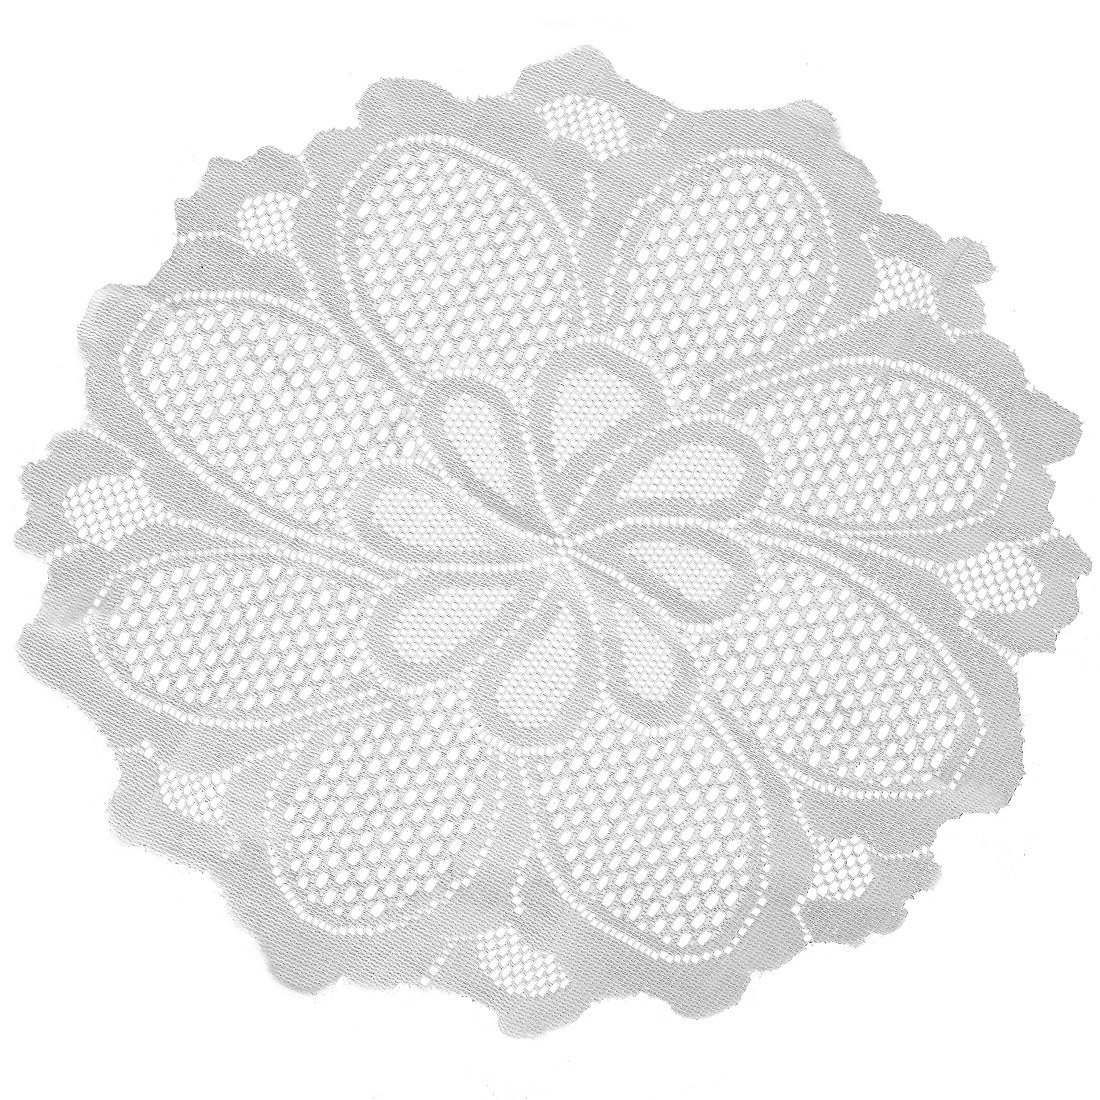 Home-X Floral Lace Table Doily, Perfect for Parties and Daily Use, Cream (24